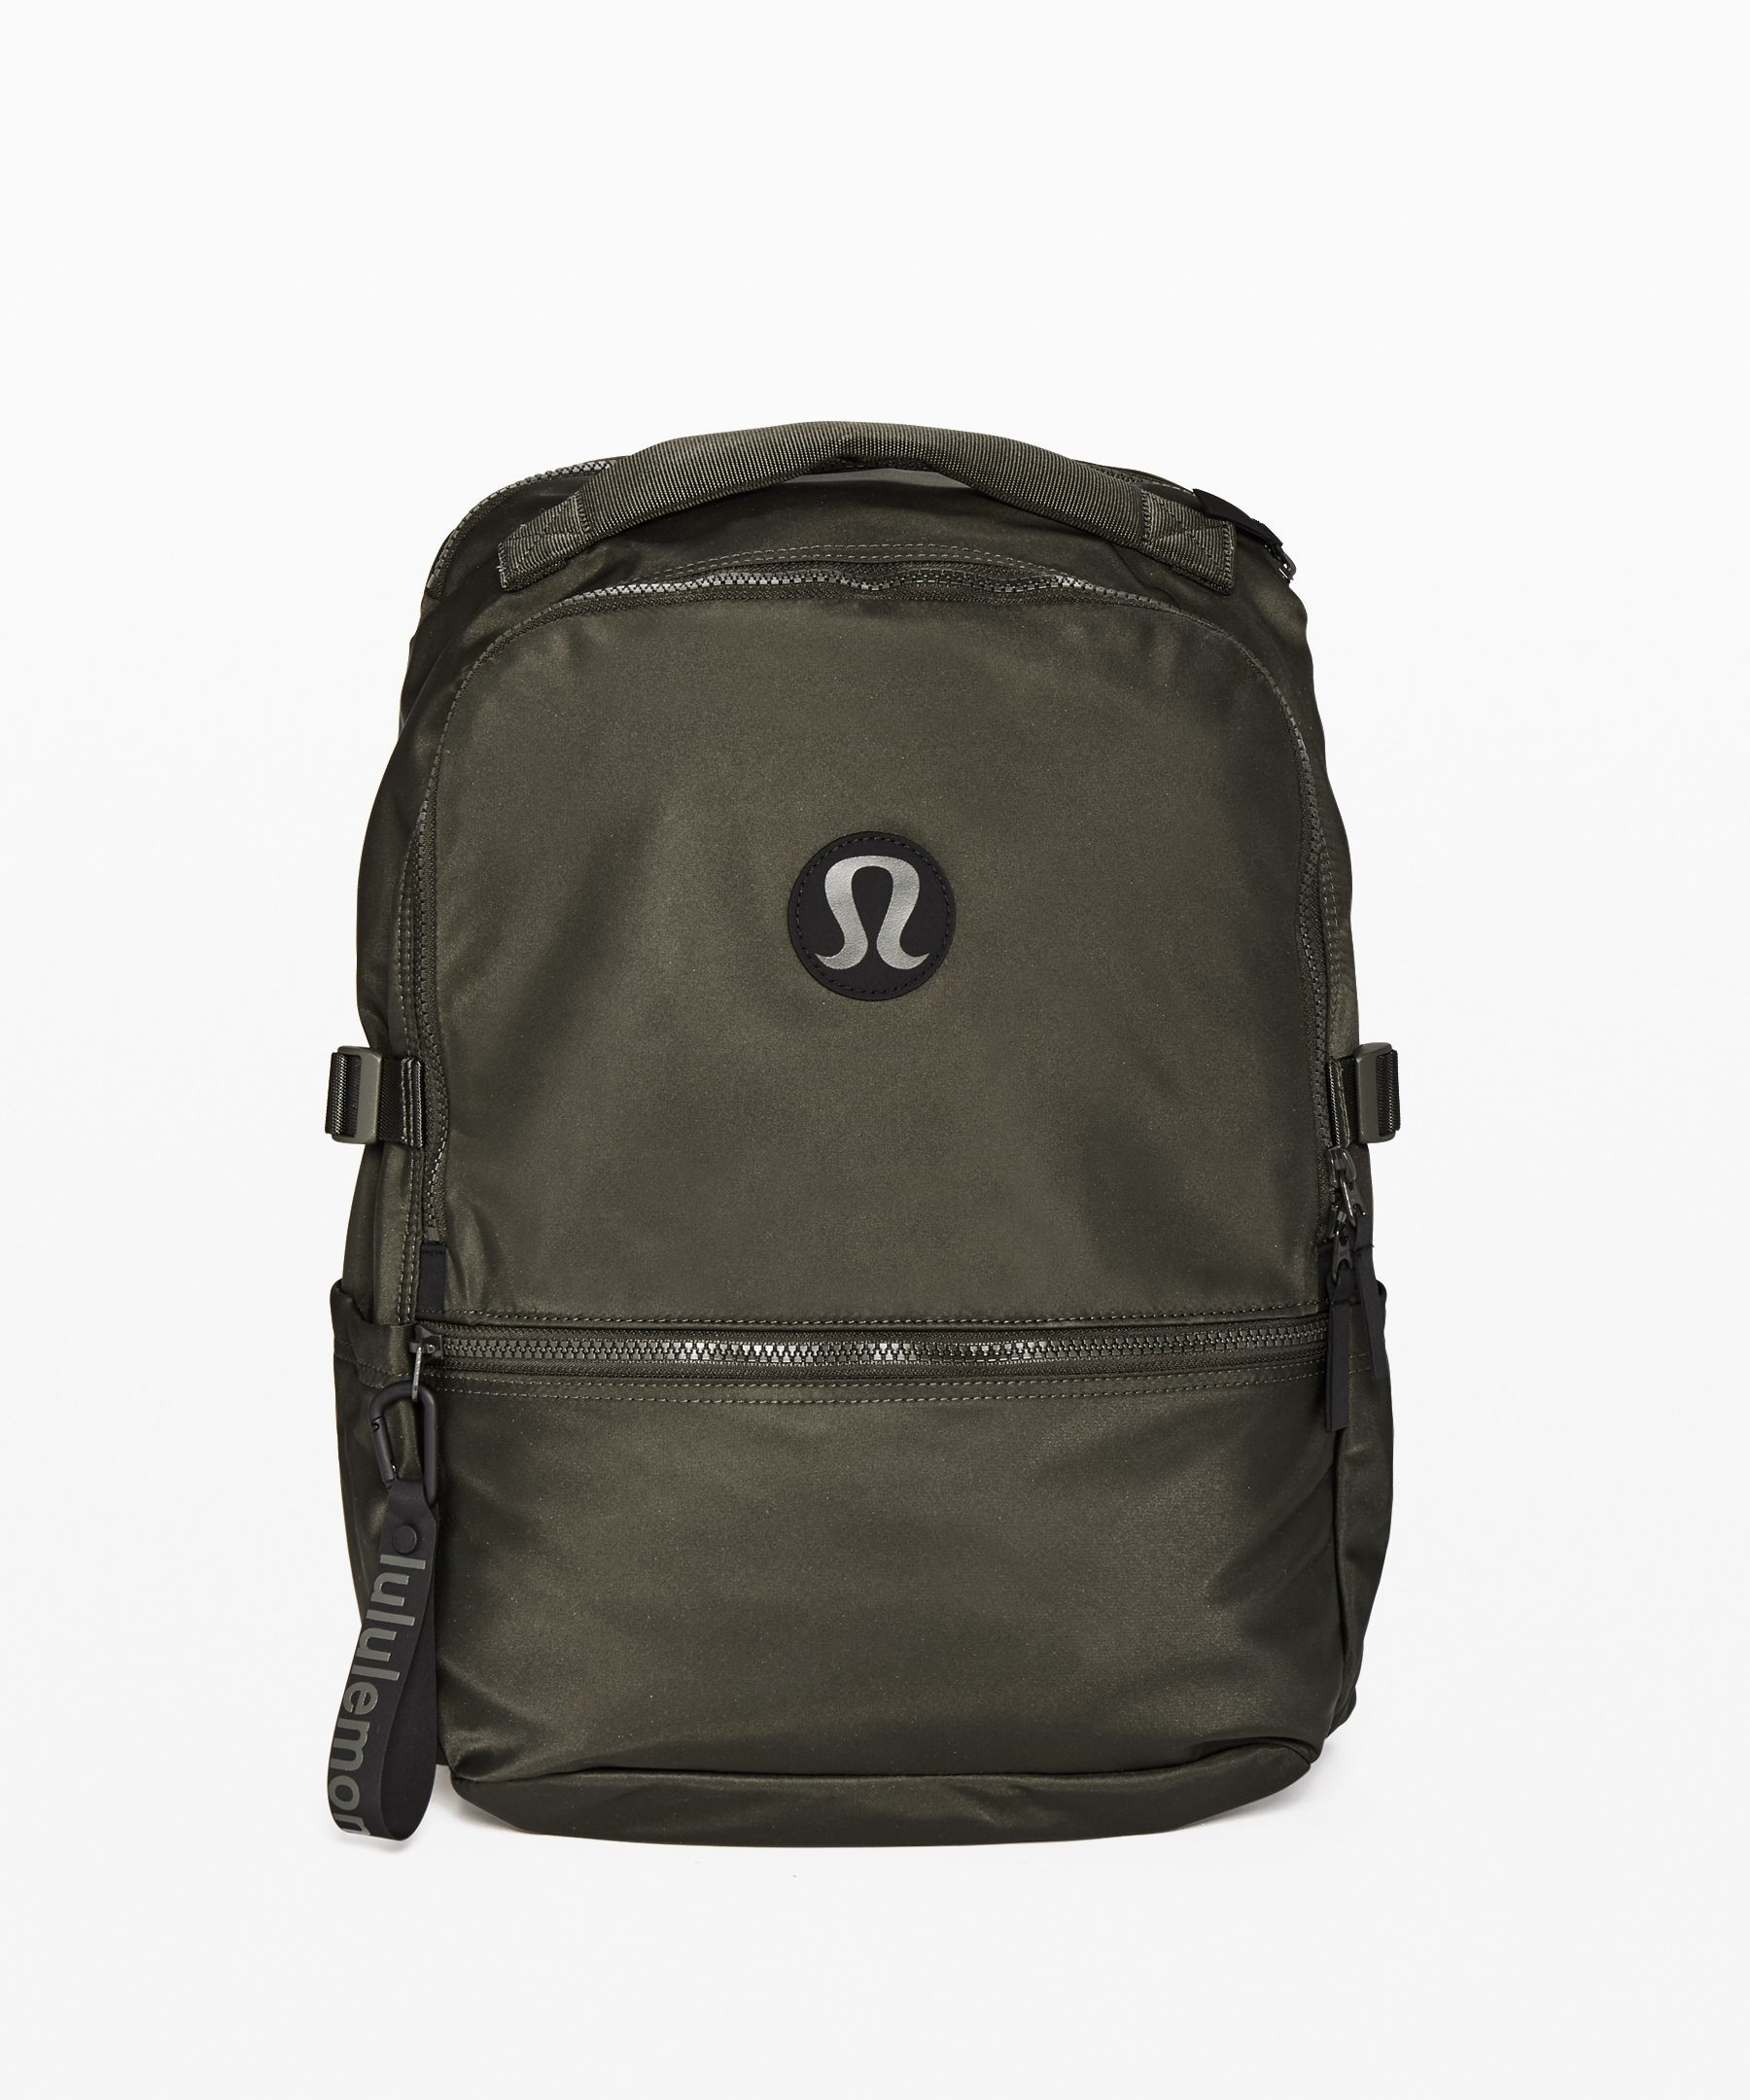 a1969371b New Crew Backpack 22L in 2019   Products   Backpacks, Bags, Lululemon